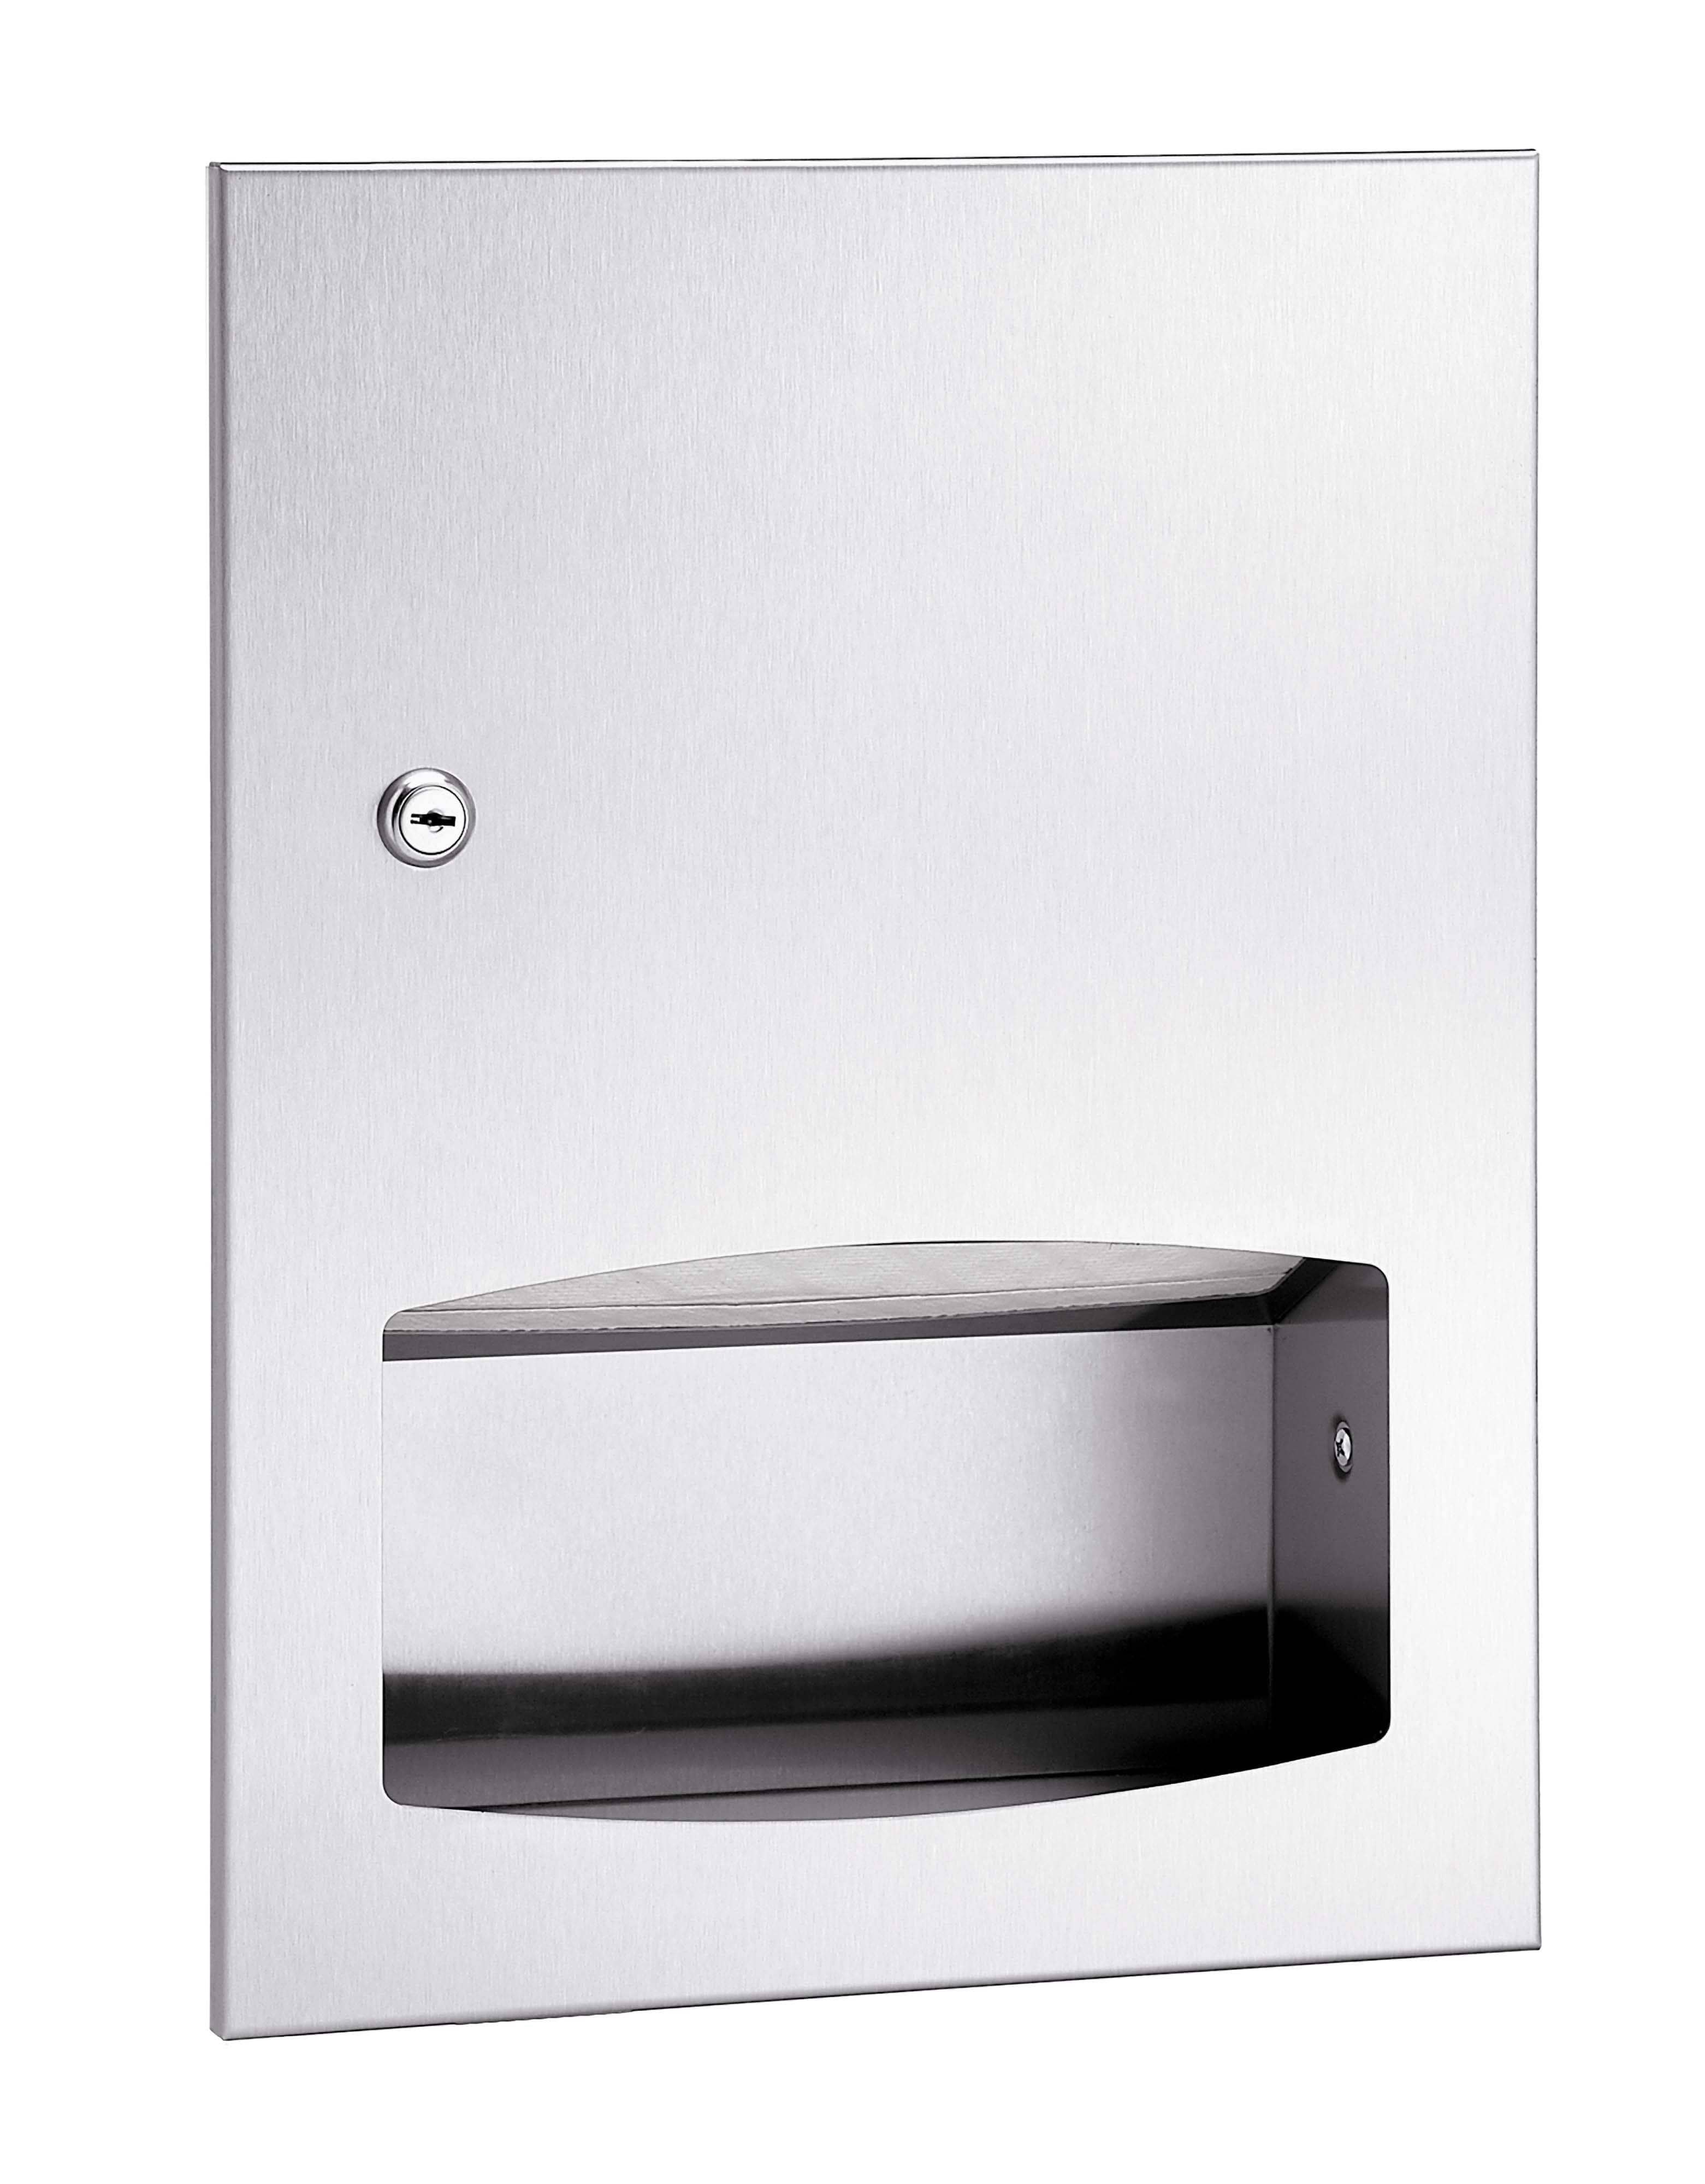 Bradley 2442-00 Commercial BX-Paper Towel Dispenser, Surface-Mounted, Stainless Steel - TotalRestroom.com